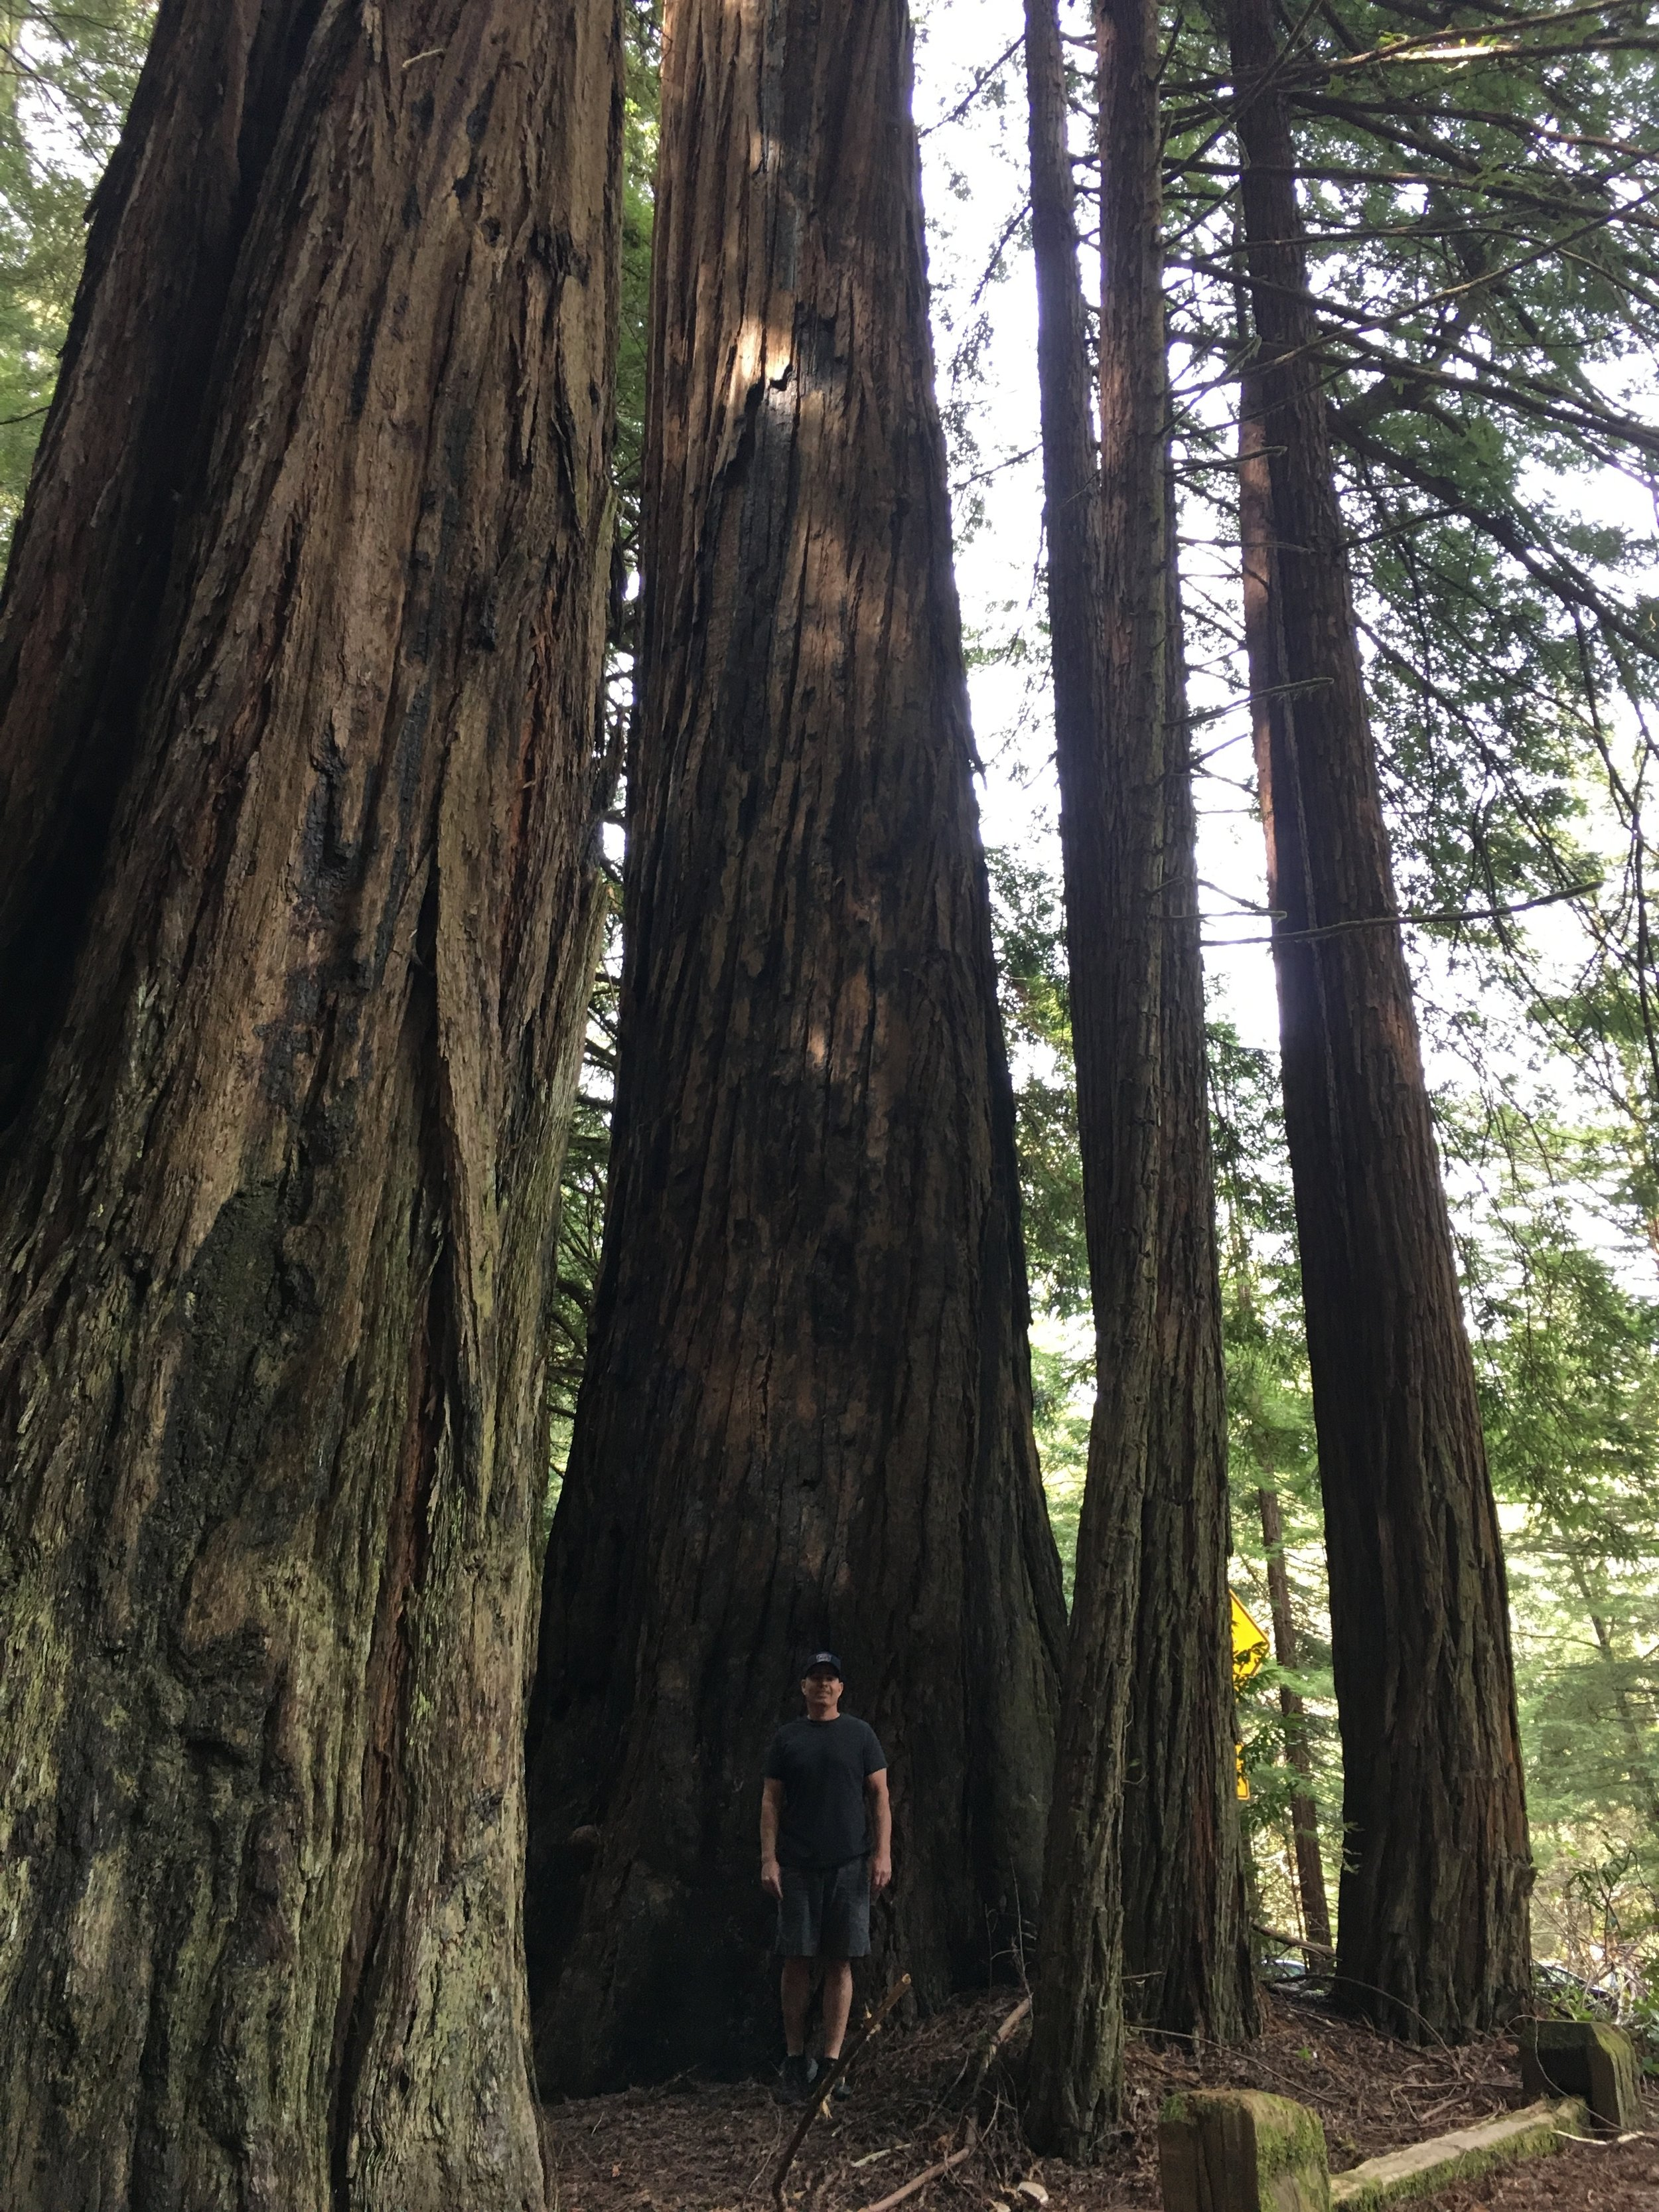 If you've never seen the redwoods in Northern CA, I highly recommend the trip. This was at Humbolt Redwoods State Park.